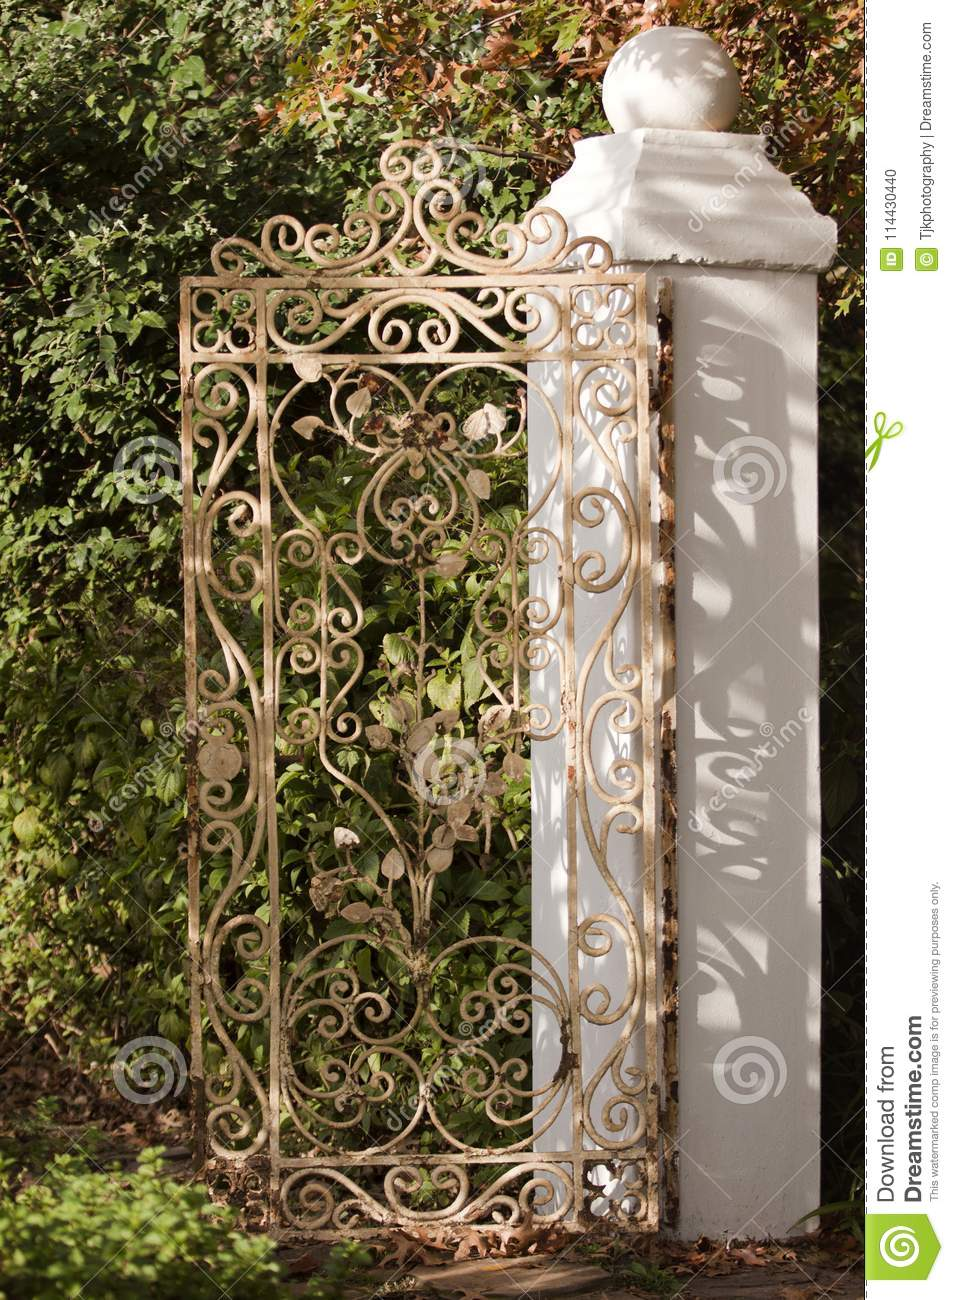 Wrought Iron Gate With White Wall In A Garden Stock Photo - Image of ...